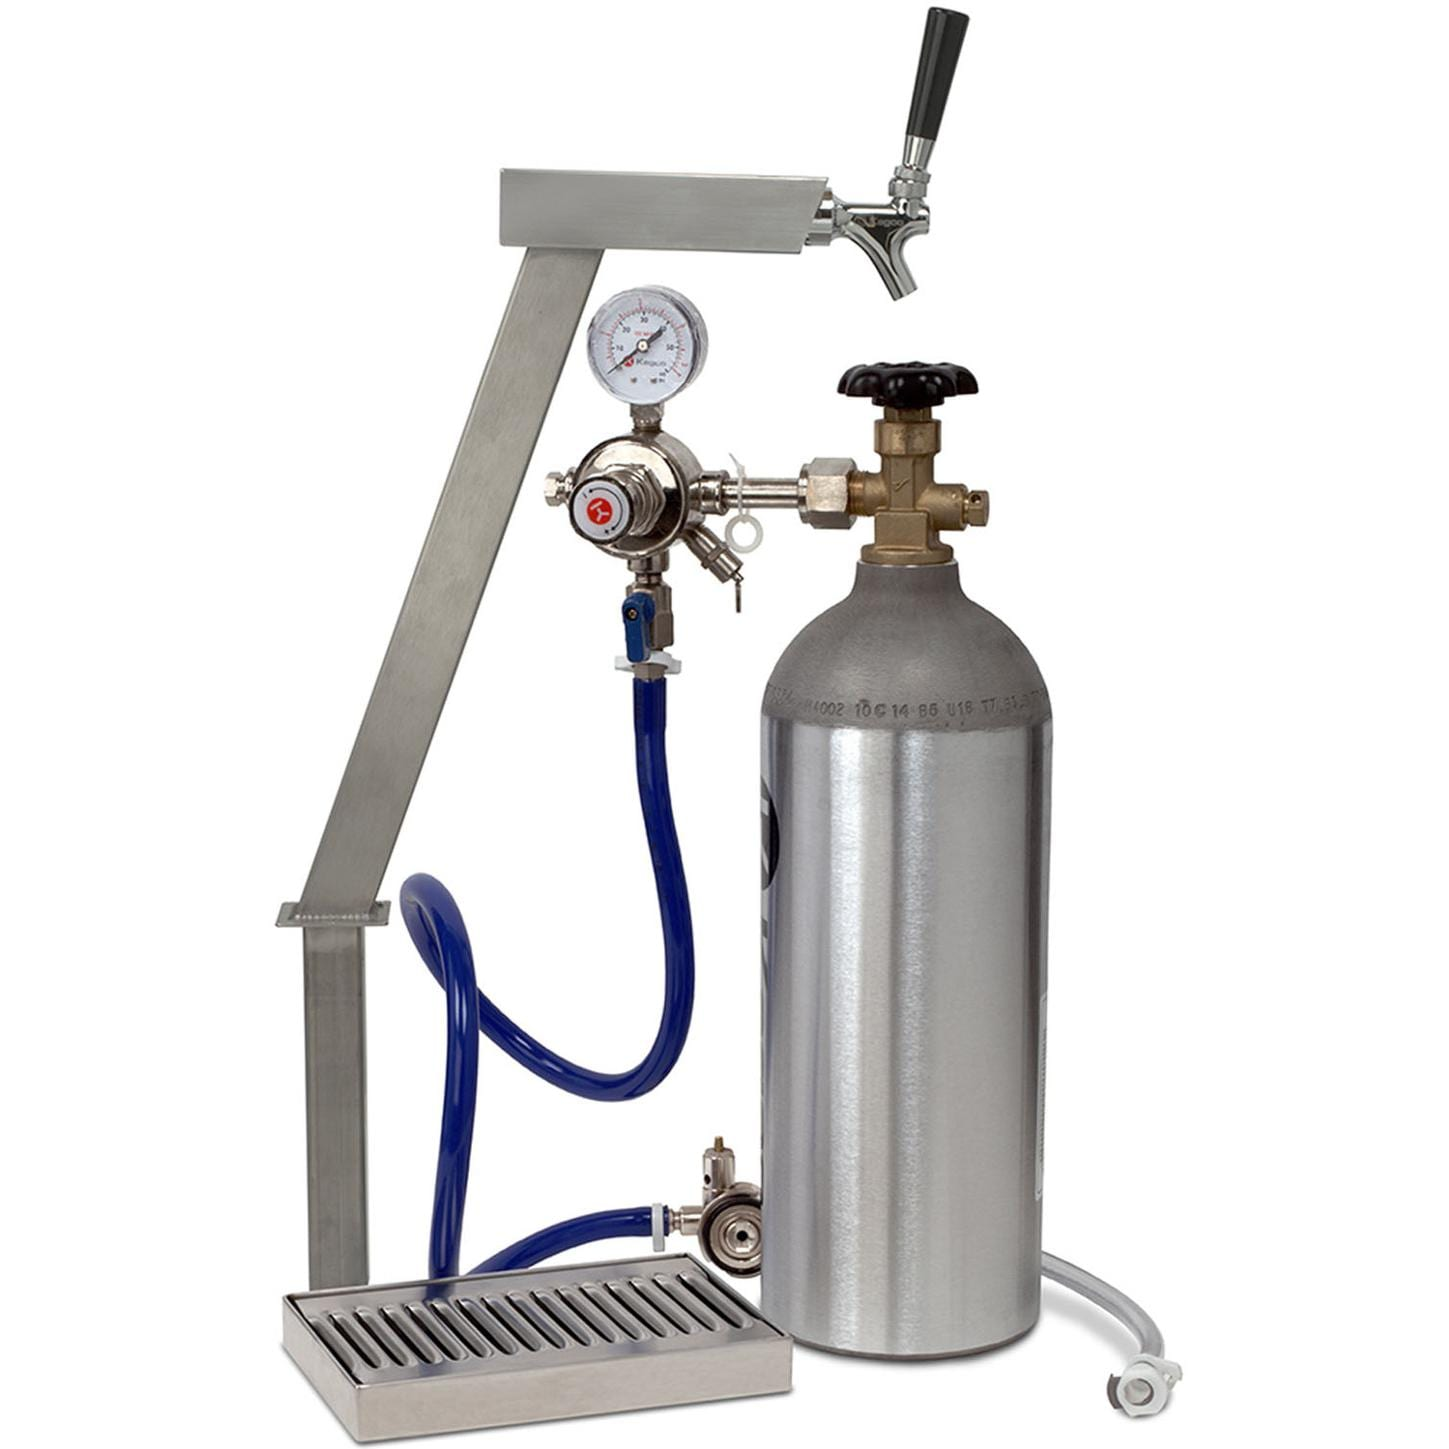 Alfresco Beer Dispensing Kegerator Kit - AKK